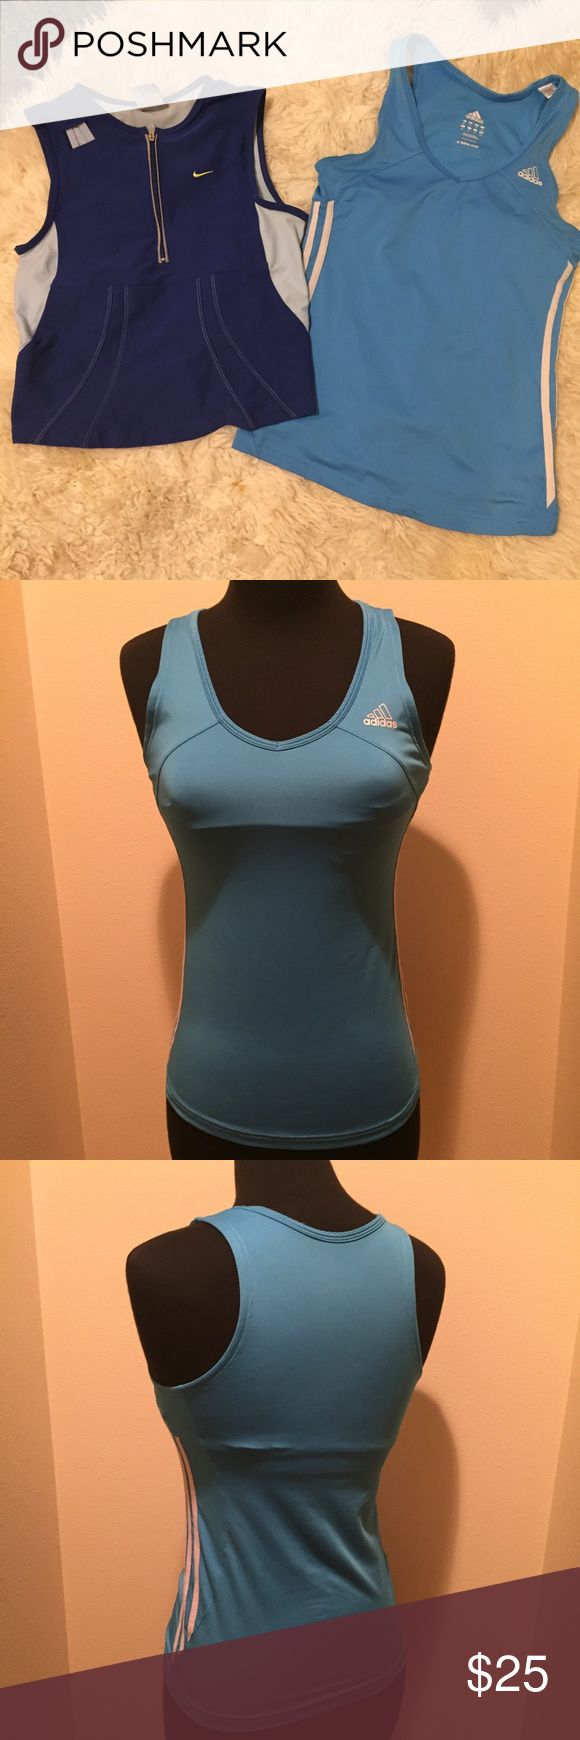 NIKE/ADIDAS WORKOUT SHIRTS BUNDLE Bundle of NIKE/ADIDAS workout tops/shirt.  Both have build in bras.  Size S.  Pre owned, good condition, pet/smoke free home Nike Tops